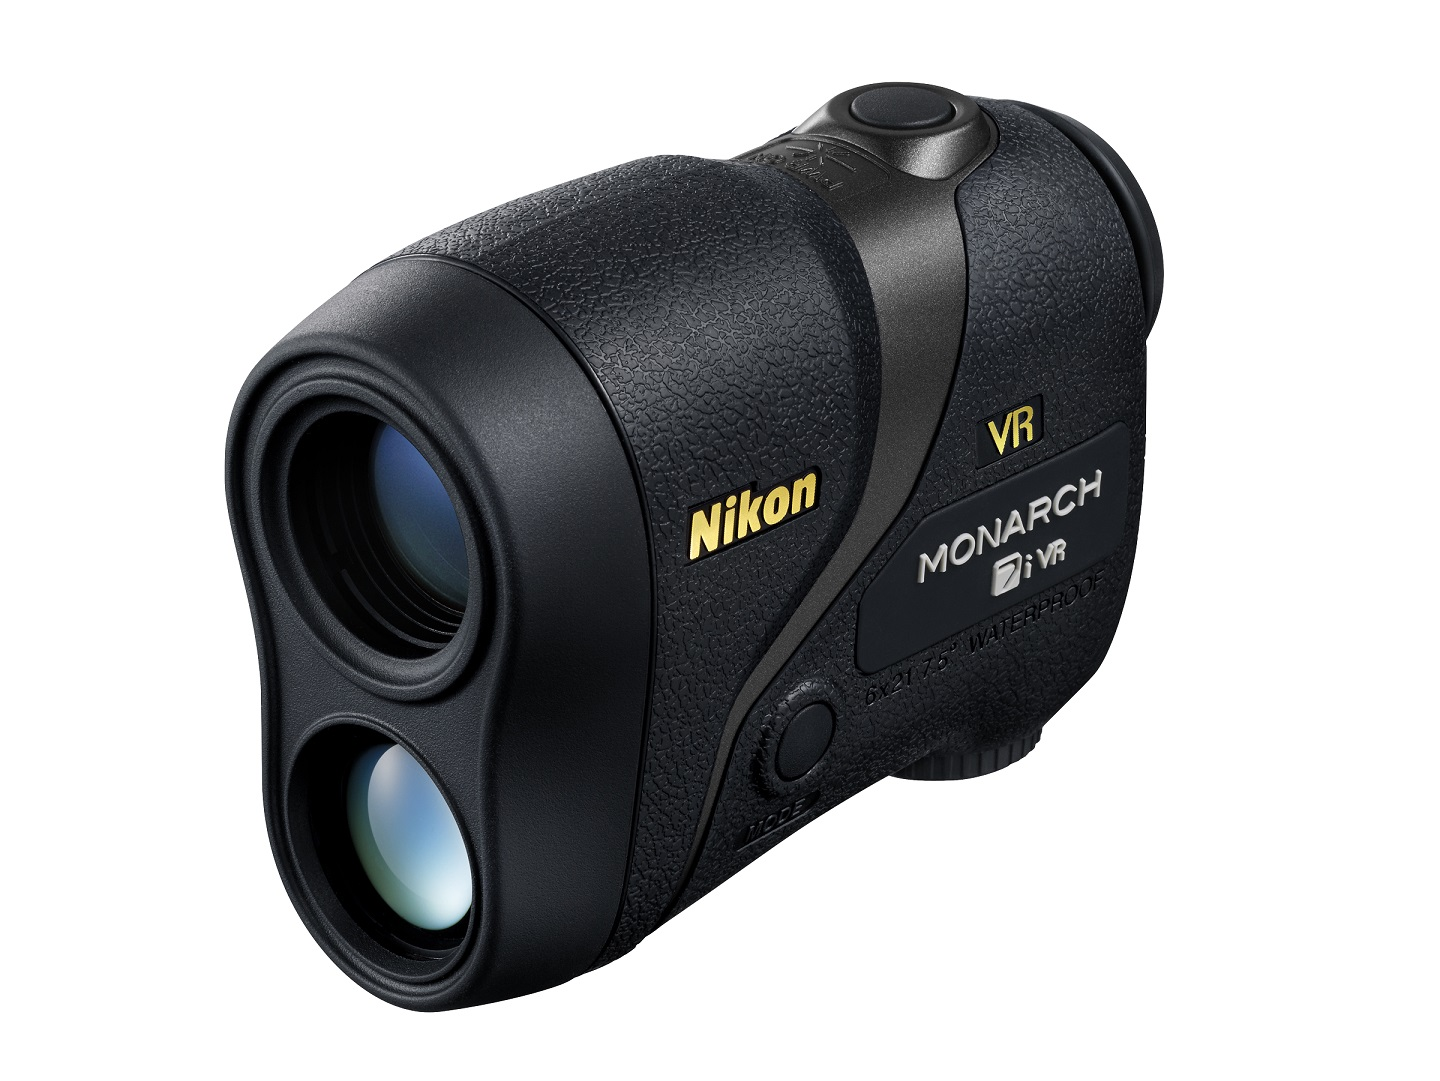 nikon_monarch-7i-vr_front-right